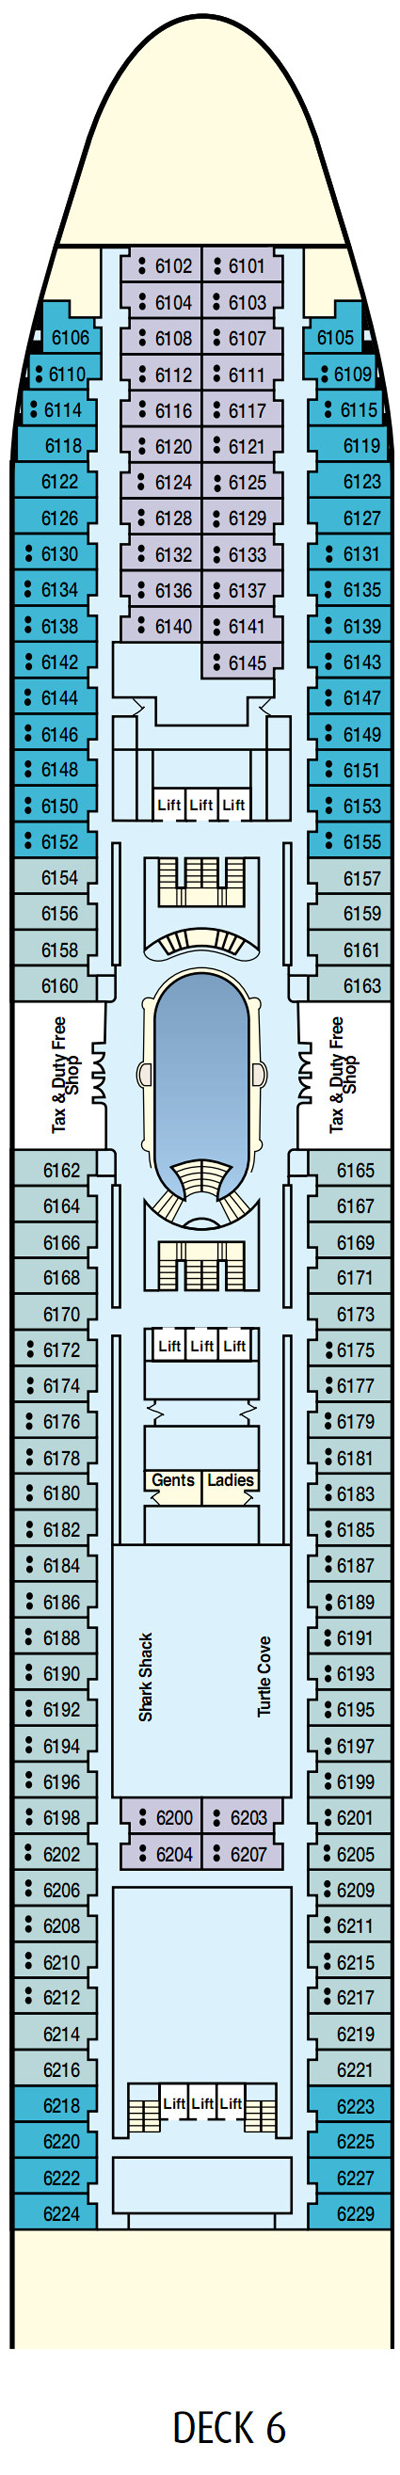 P&O - Pacific Dawn Emerald Deck 6 layout